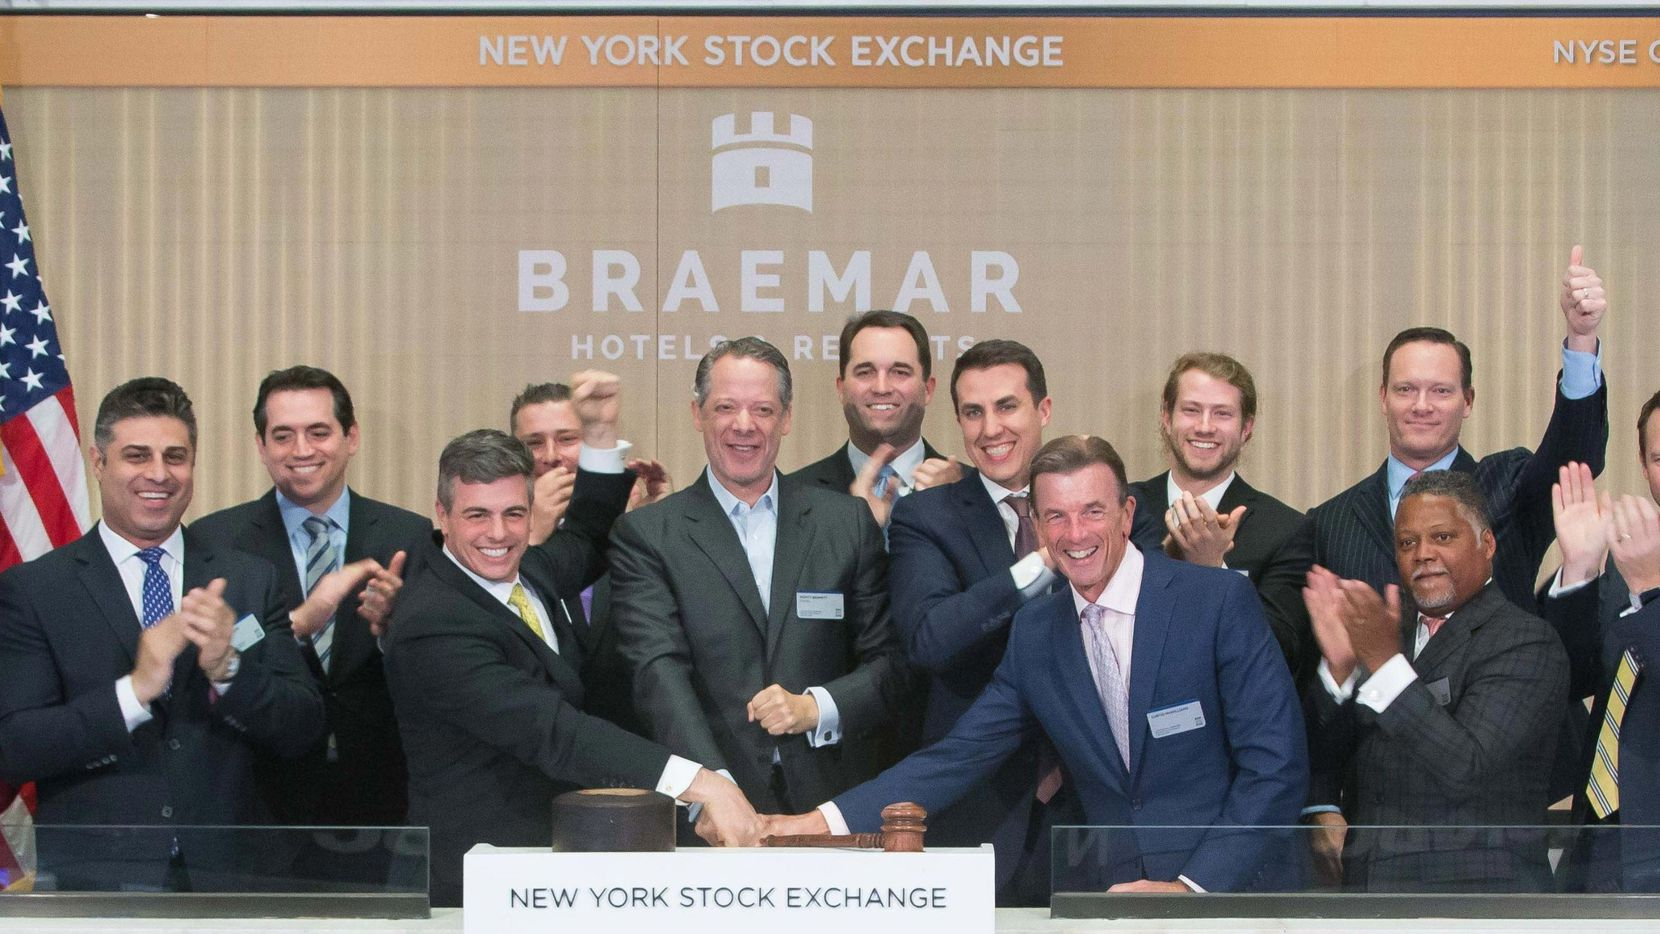 Dallas hotel executive Monty Bennett (center) rang the closing bell at the New York Stock Exchange in 2018 for one of the hotel real estate investment trusts that he chairs.